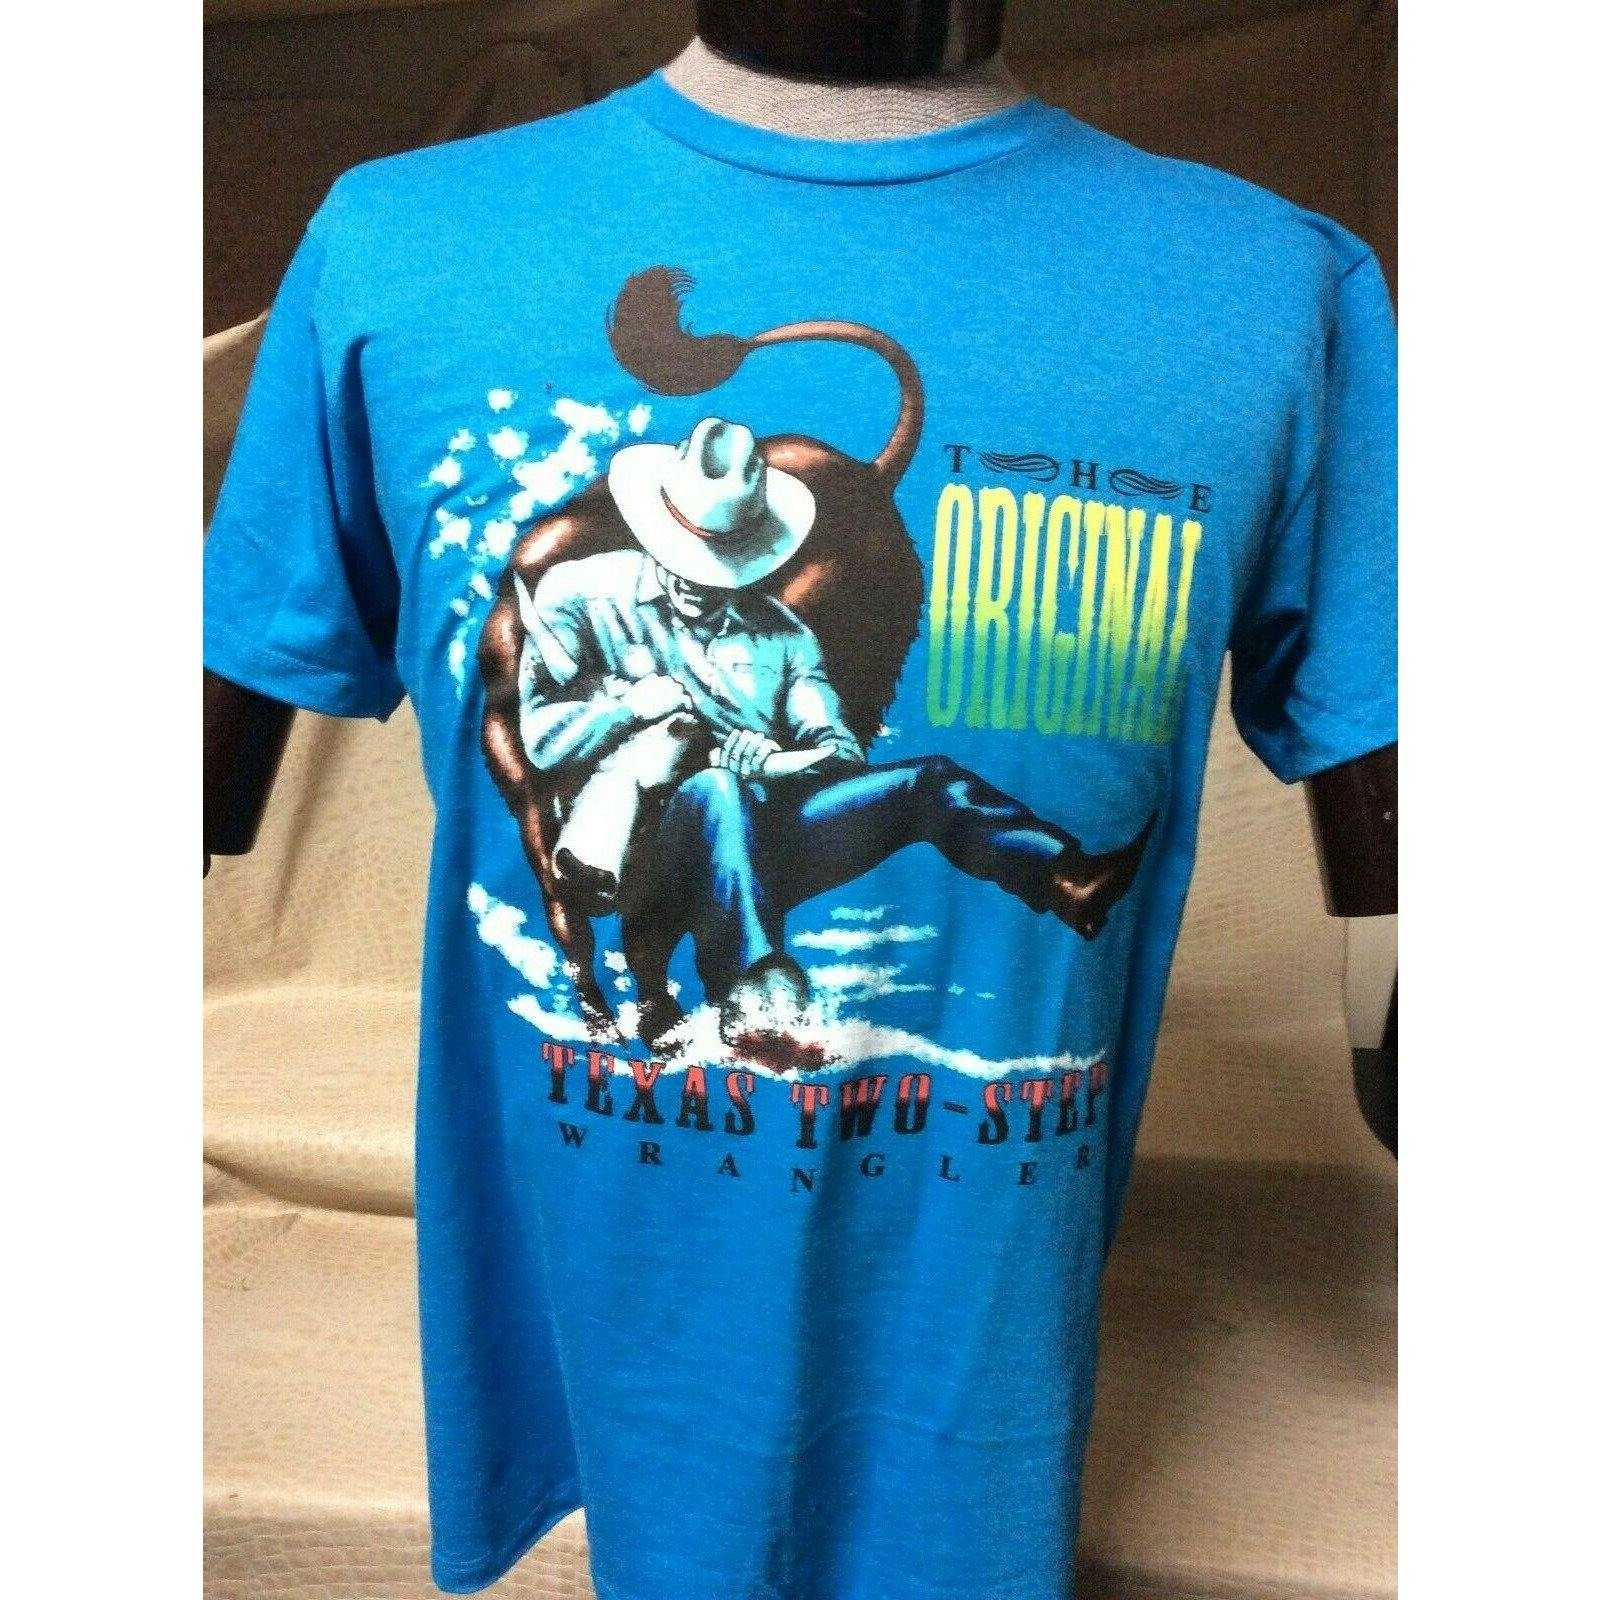 New Mens Western Wear Cowboy Wrangler T-Shirt Blue - CWesternwear